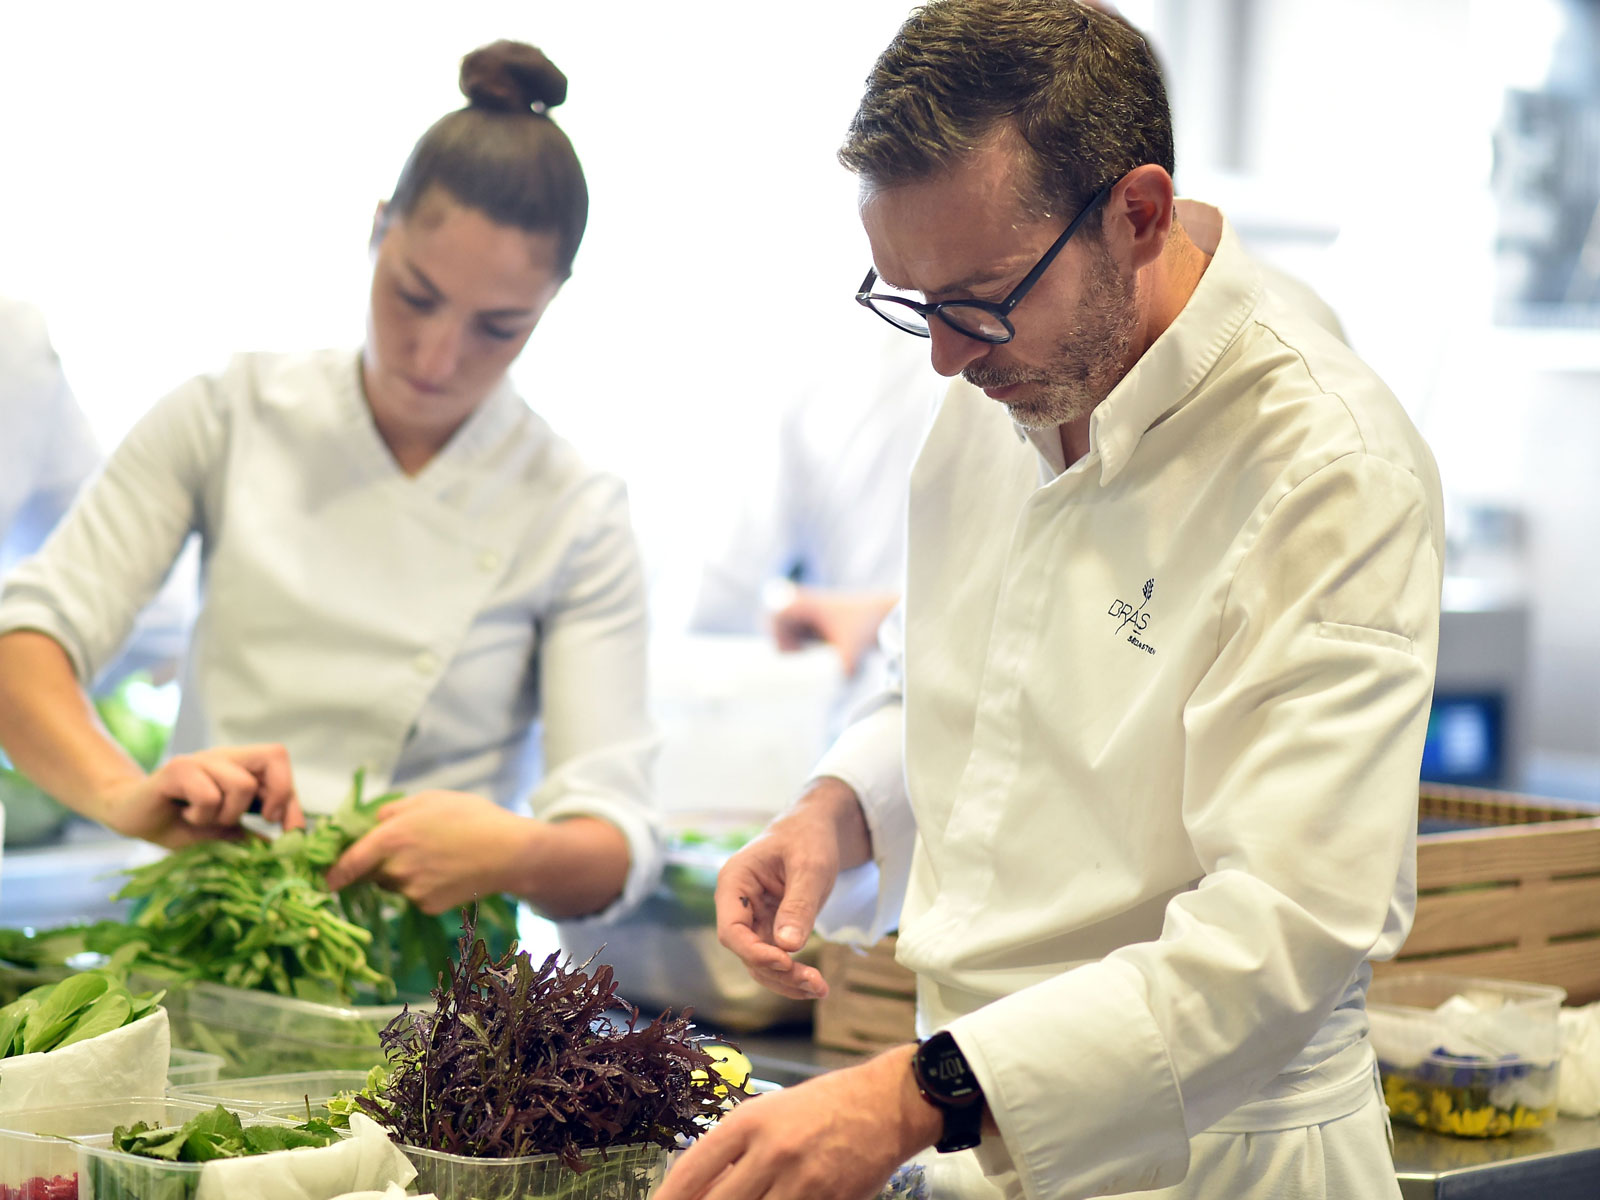 Chef Who Gave Back His Michelin Star 'Surprised' to Find His Restaurant Back on the List